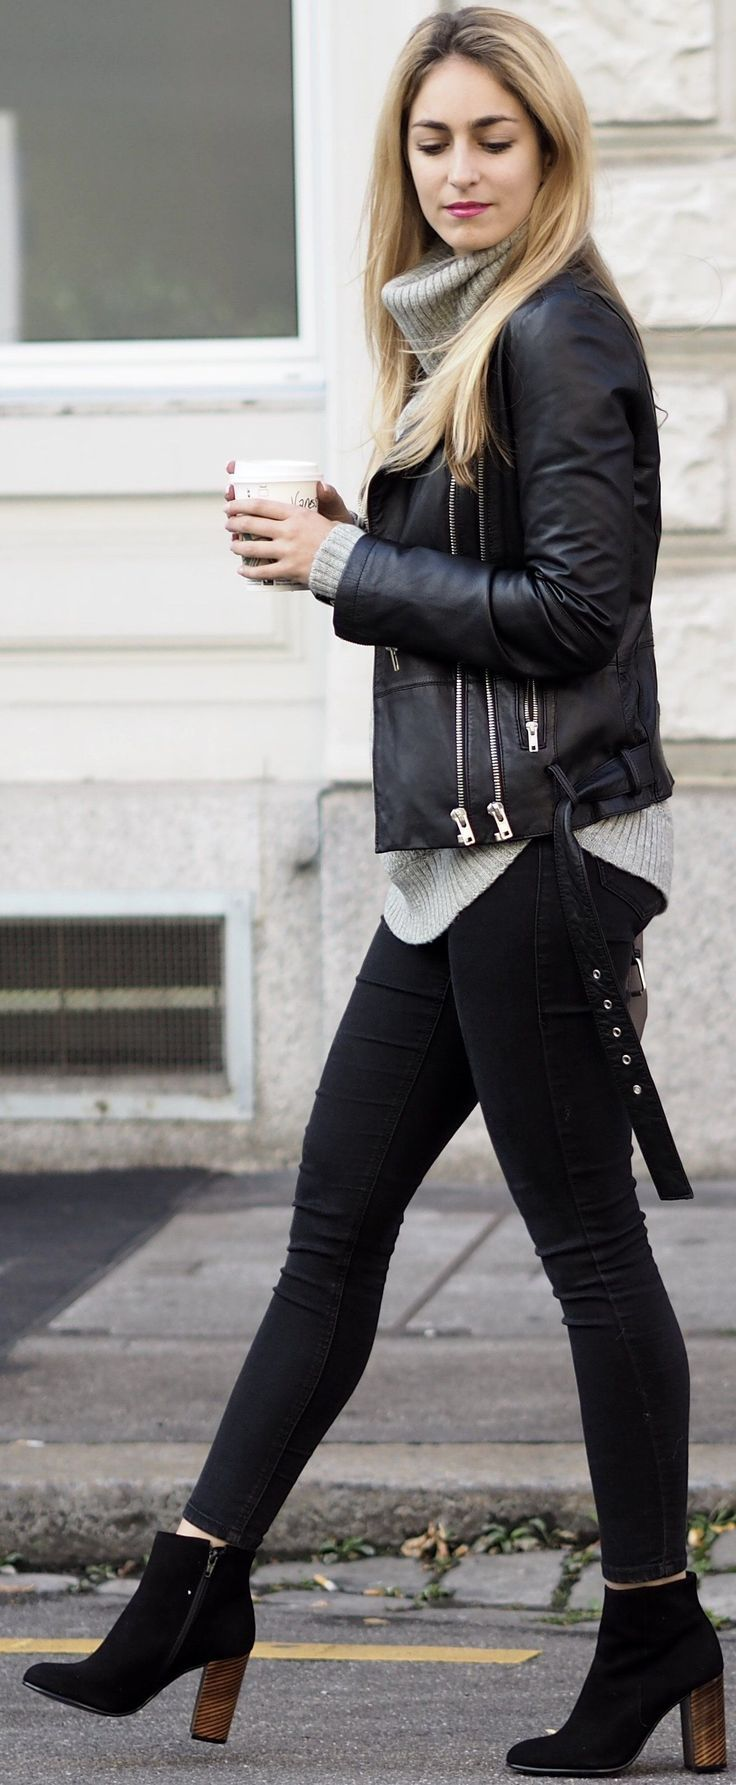 Grey and black outfit ideas